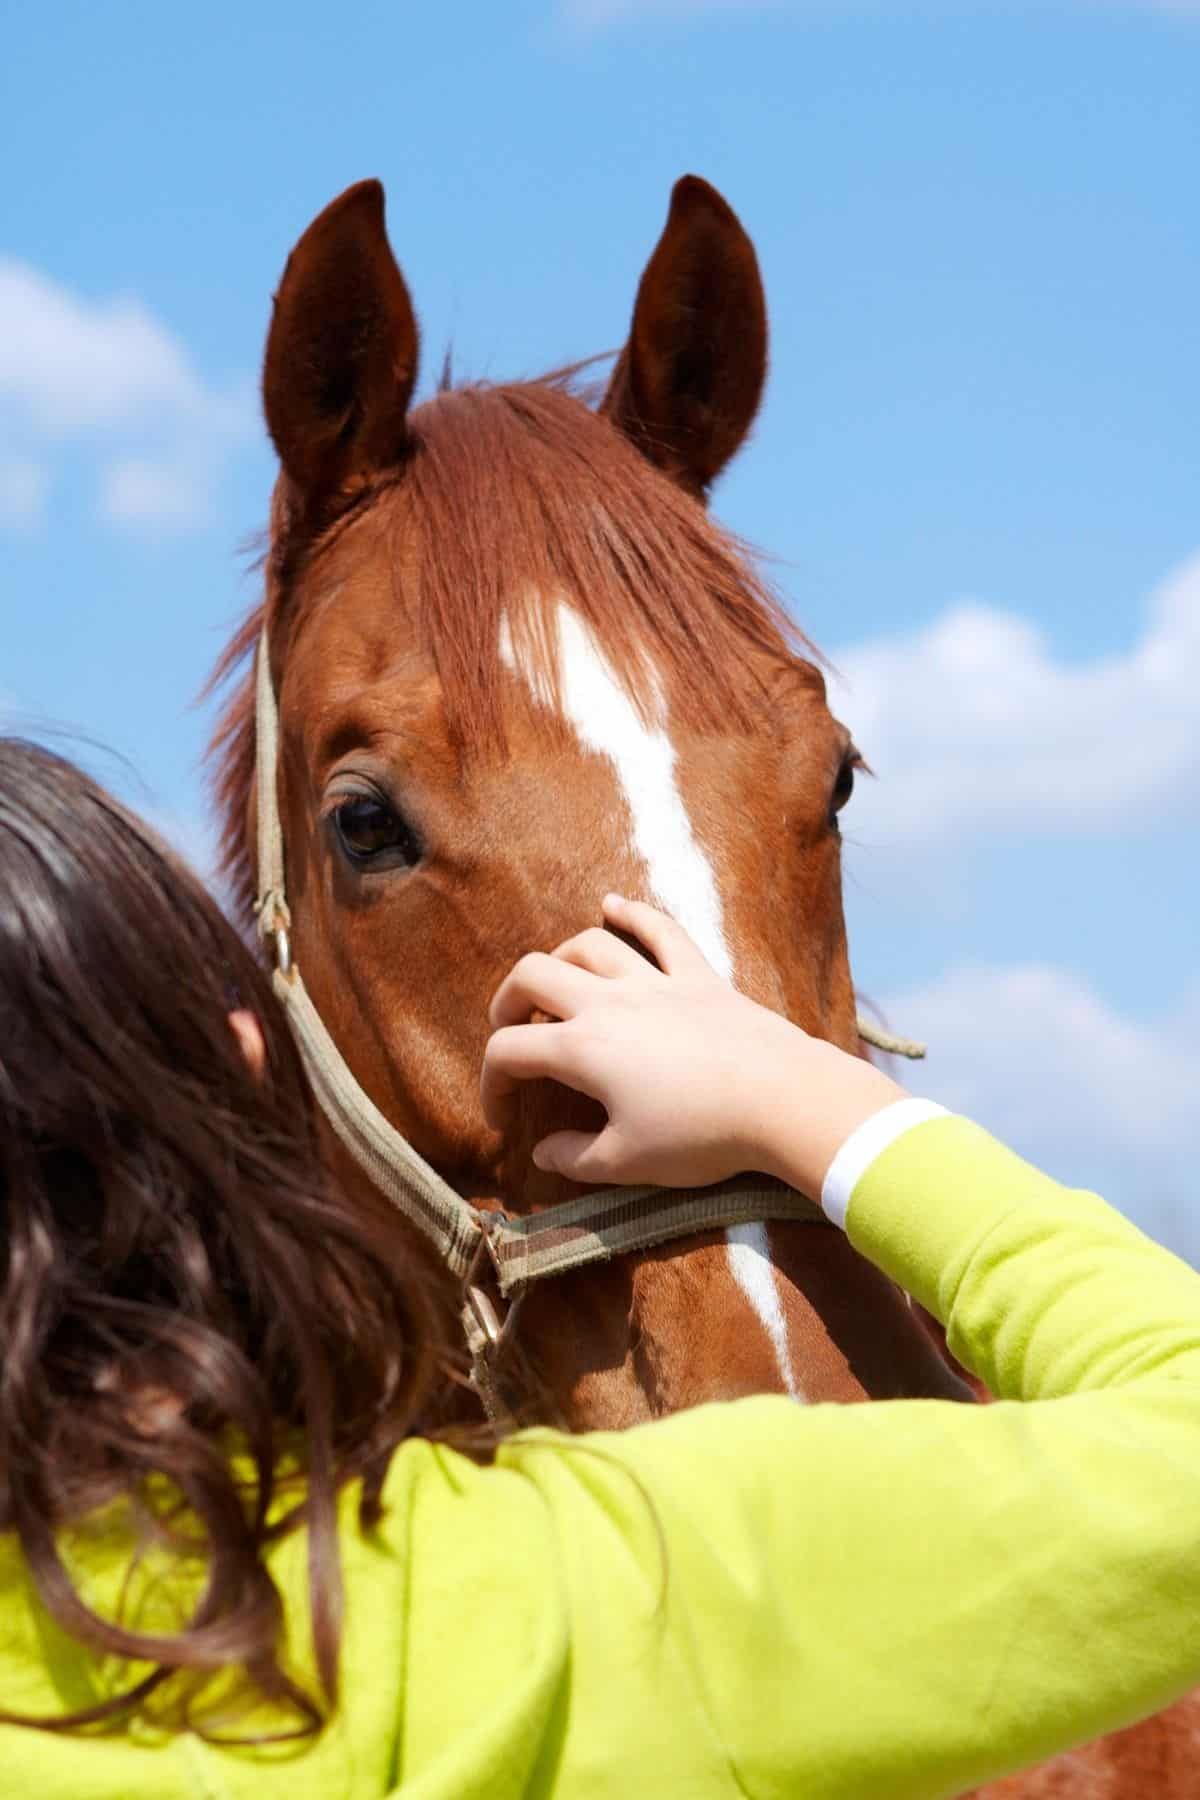 Child in green shirt petting horse nose